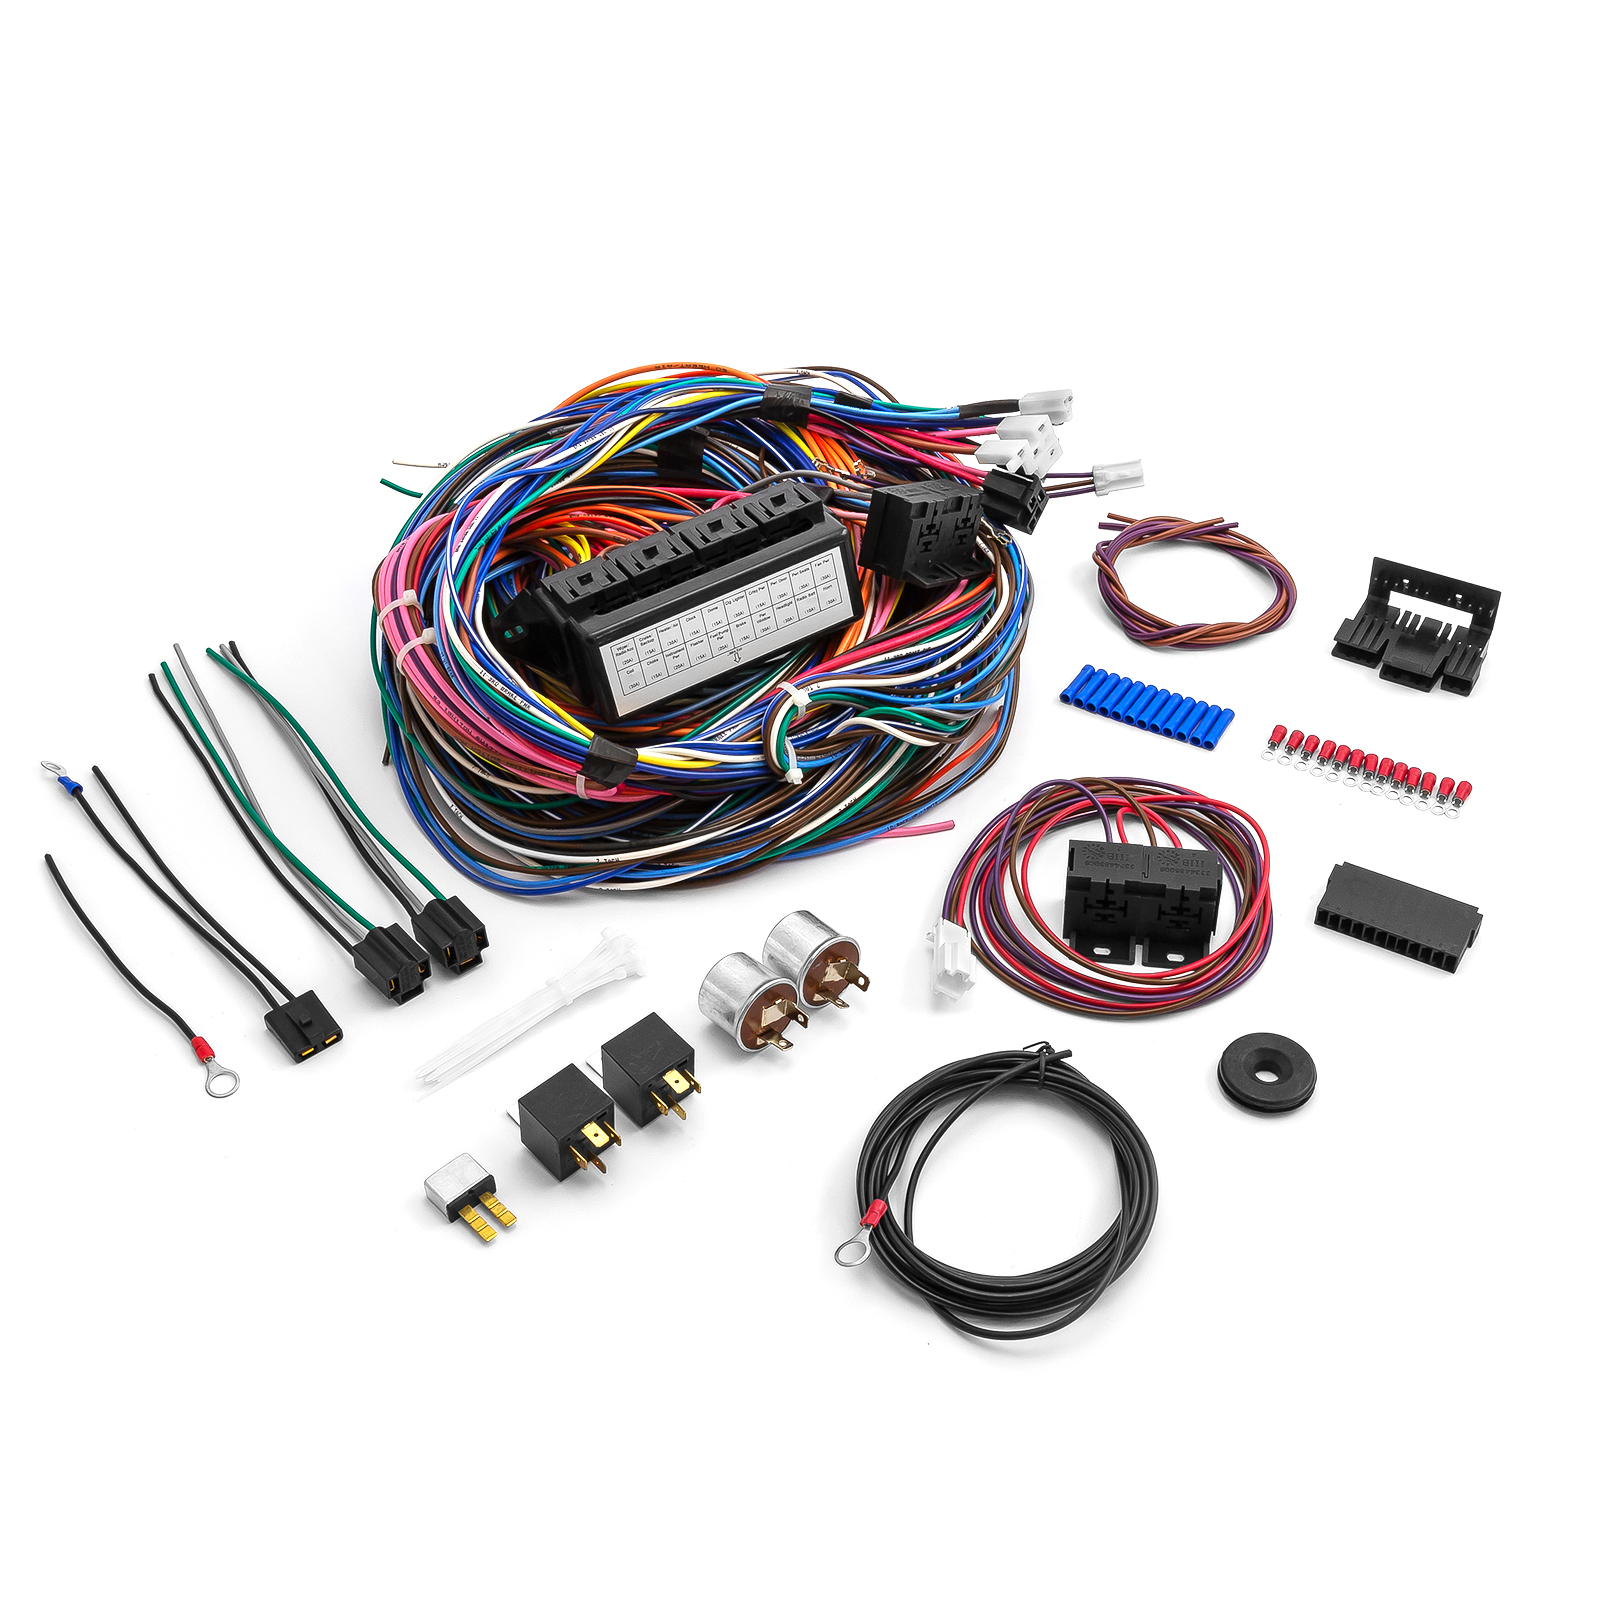 Universal Auto Wiring Harness Kits Diagrams Street Rod 20 Circuit Kit Hot Trailer Tail Light Jegs Electric Fan